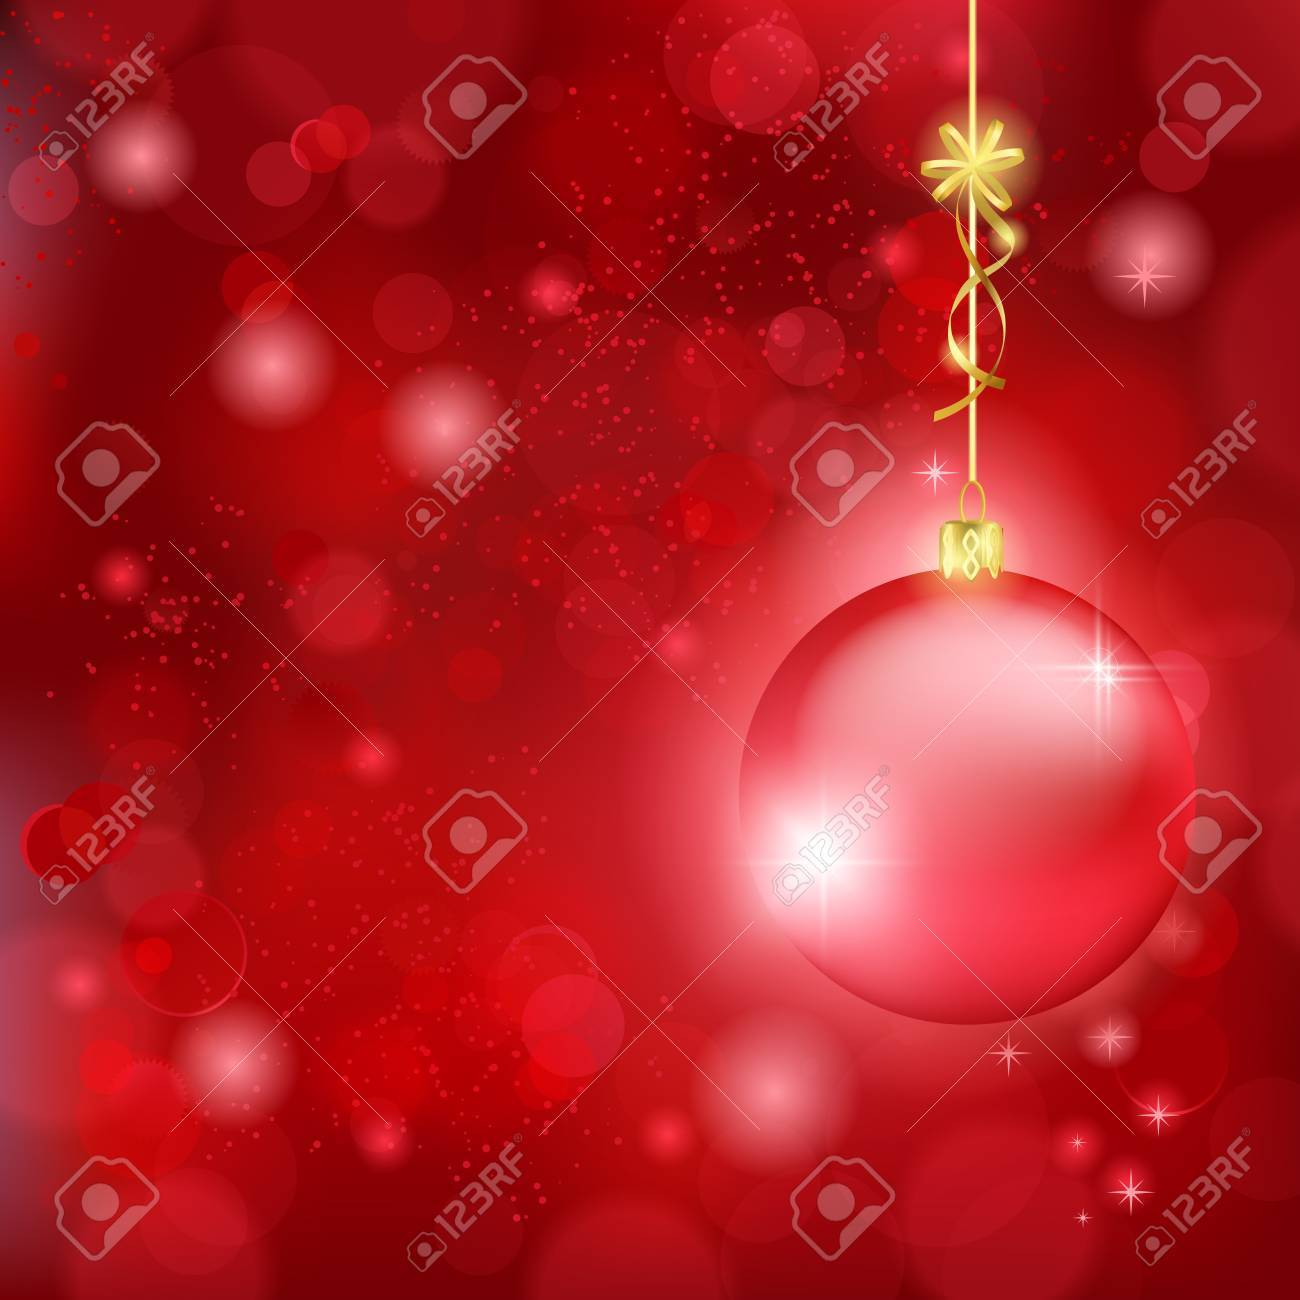 Blurry lights on dark red background and a red bauble hanging with a golden bow. Great backdrop for Christmas themes. Space for your text. Stock Vector - 16519292